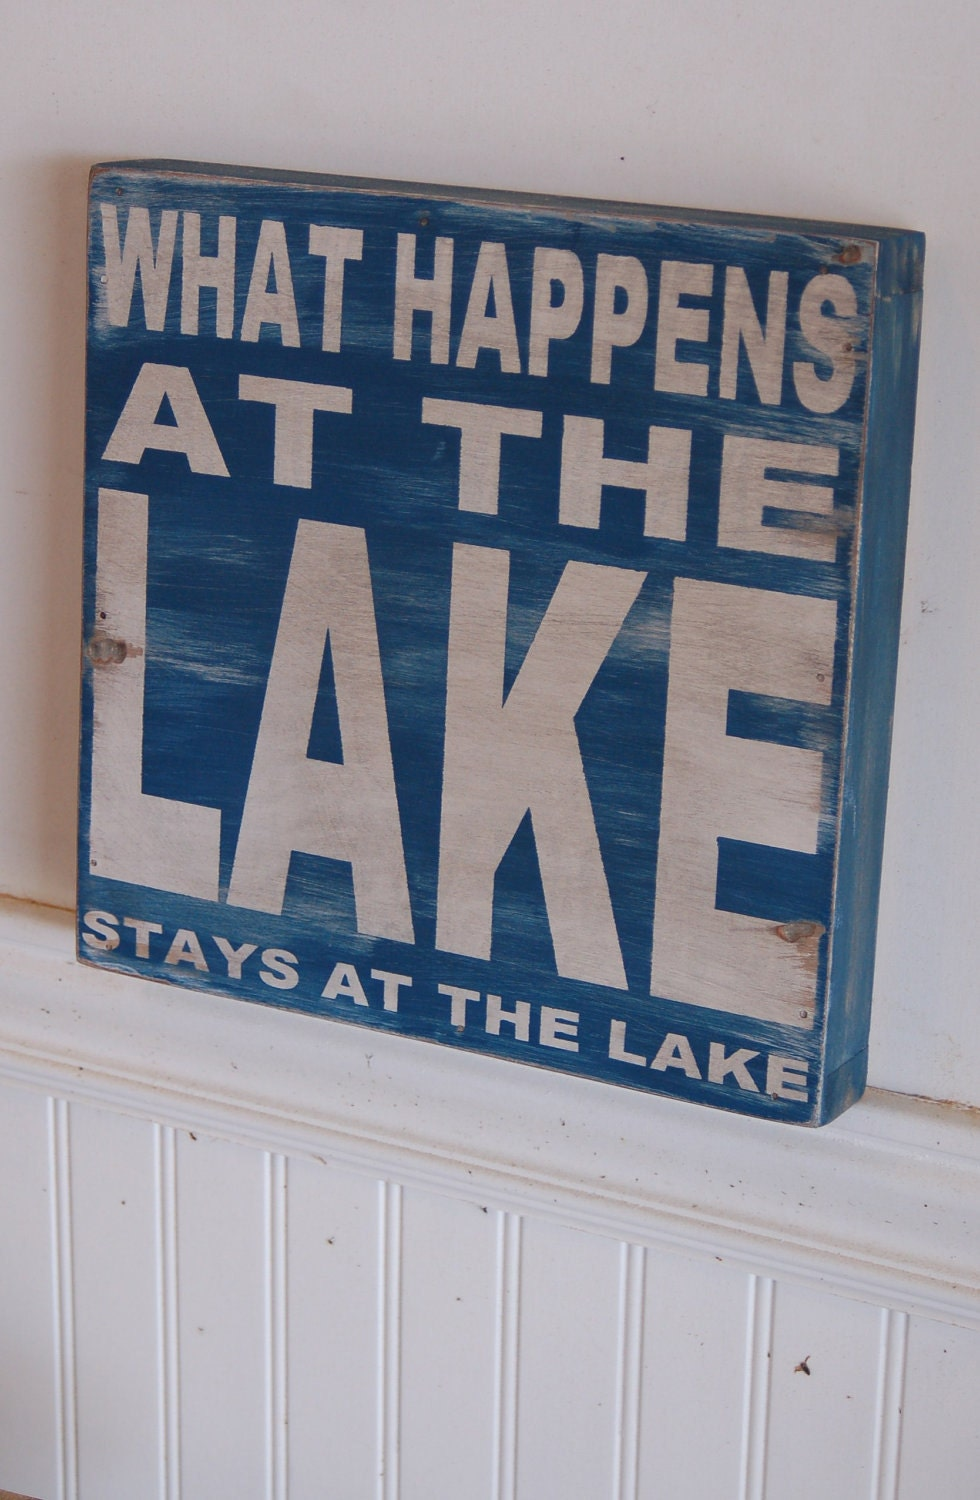 What Happens In A Youtube Minute Infographic: What Happens At The Lake Stays At The Lake Rustic By Kspeddler